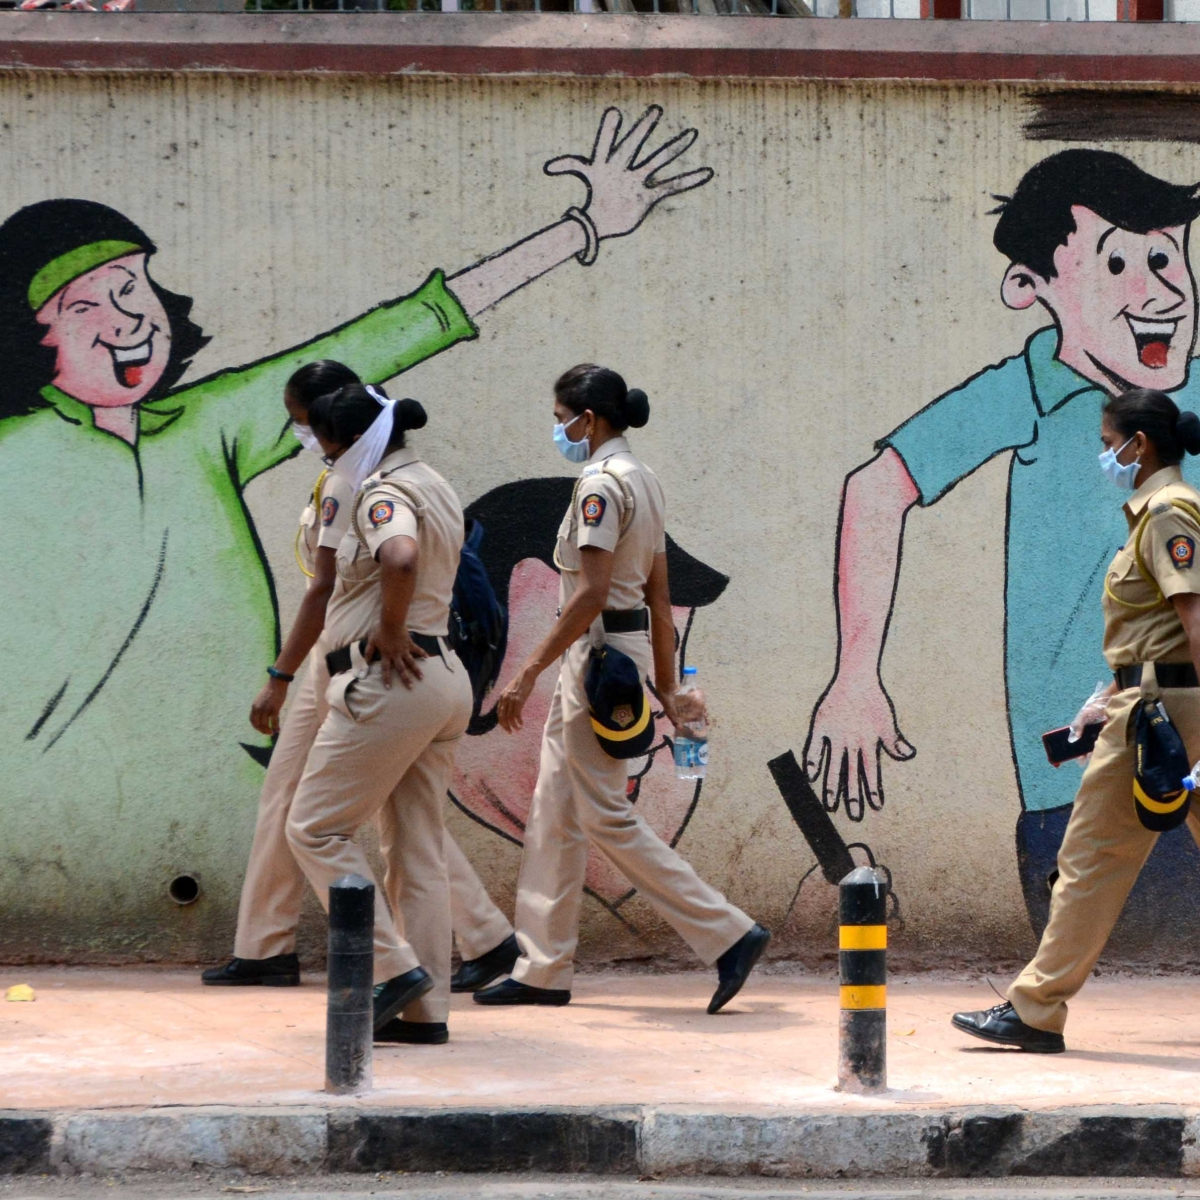 Maha Govt announces Rs 50 lakh accident cover for frontline warriors including police, Aanganwadi workers, home guards